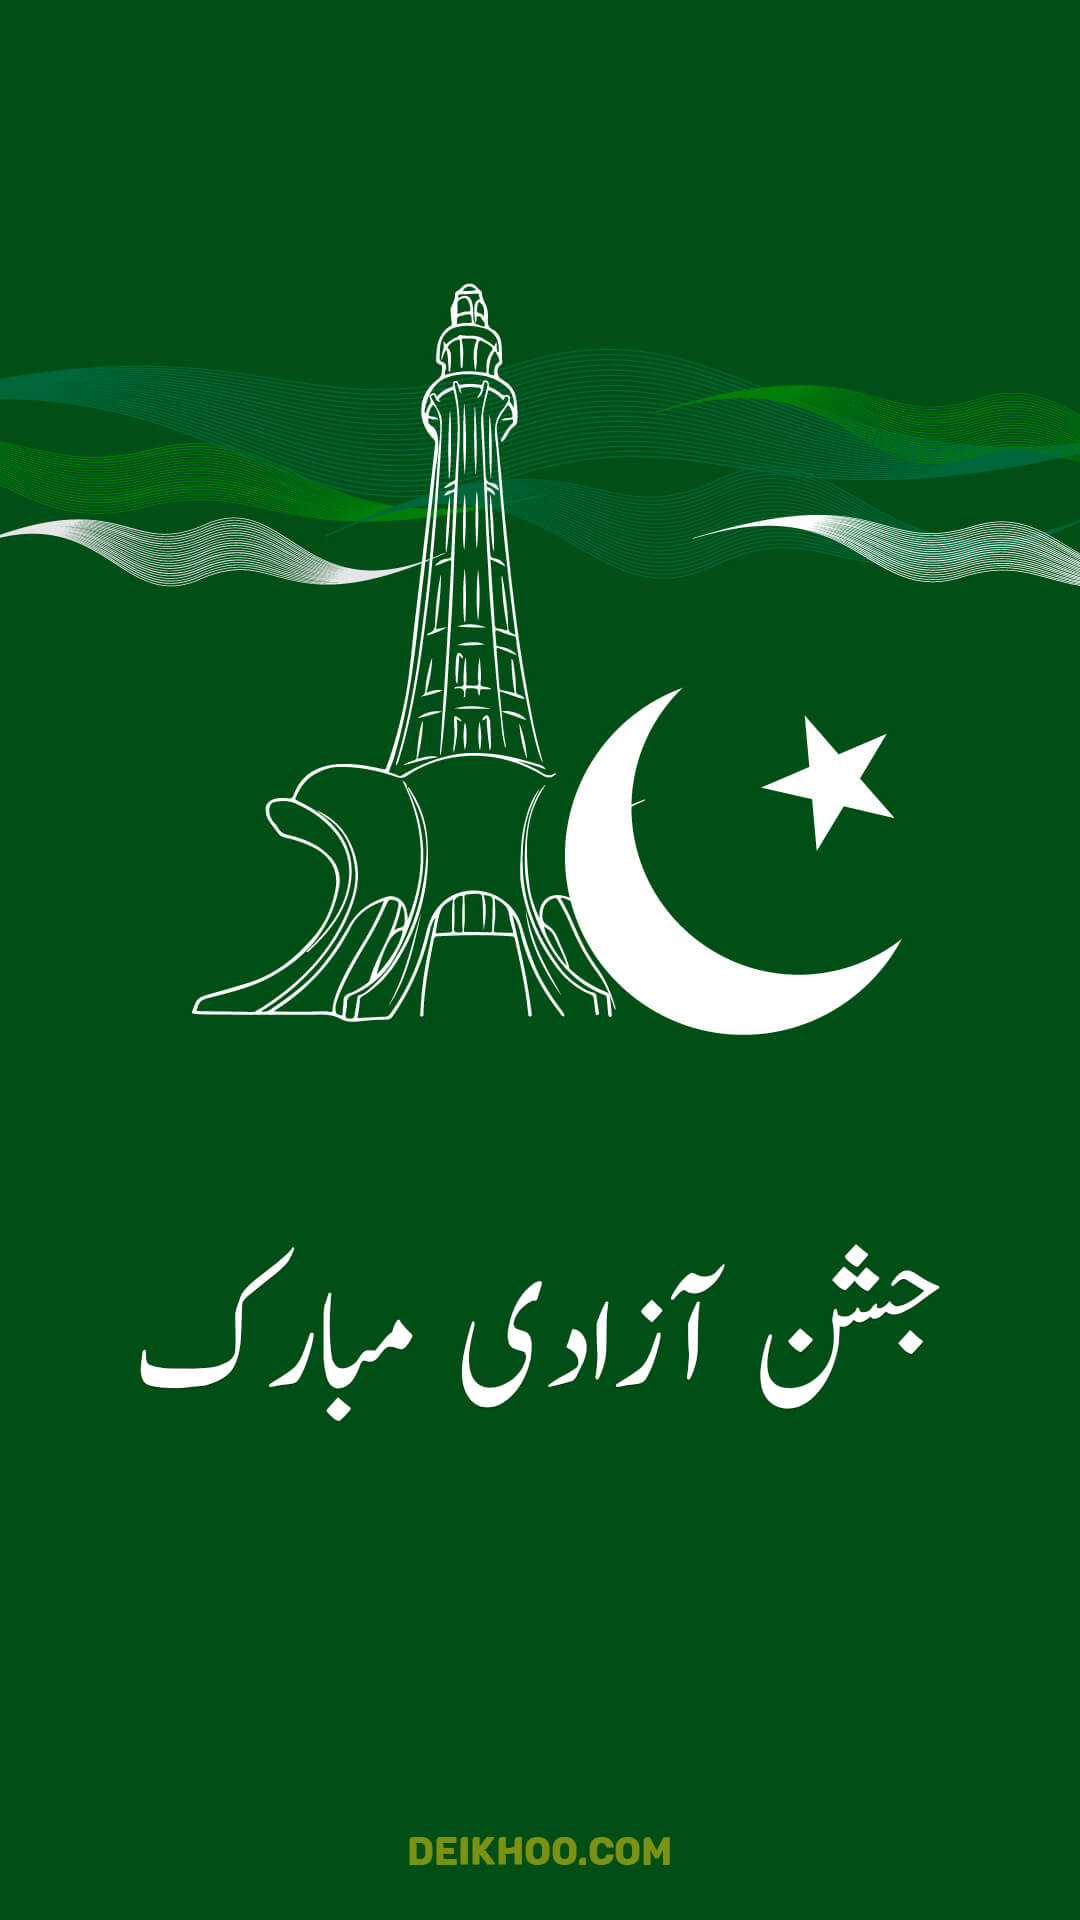 Pakistan 14 August Independence day wallpaper